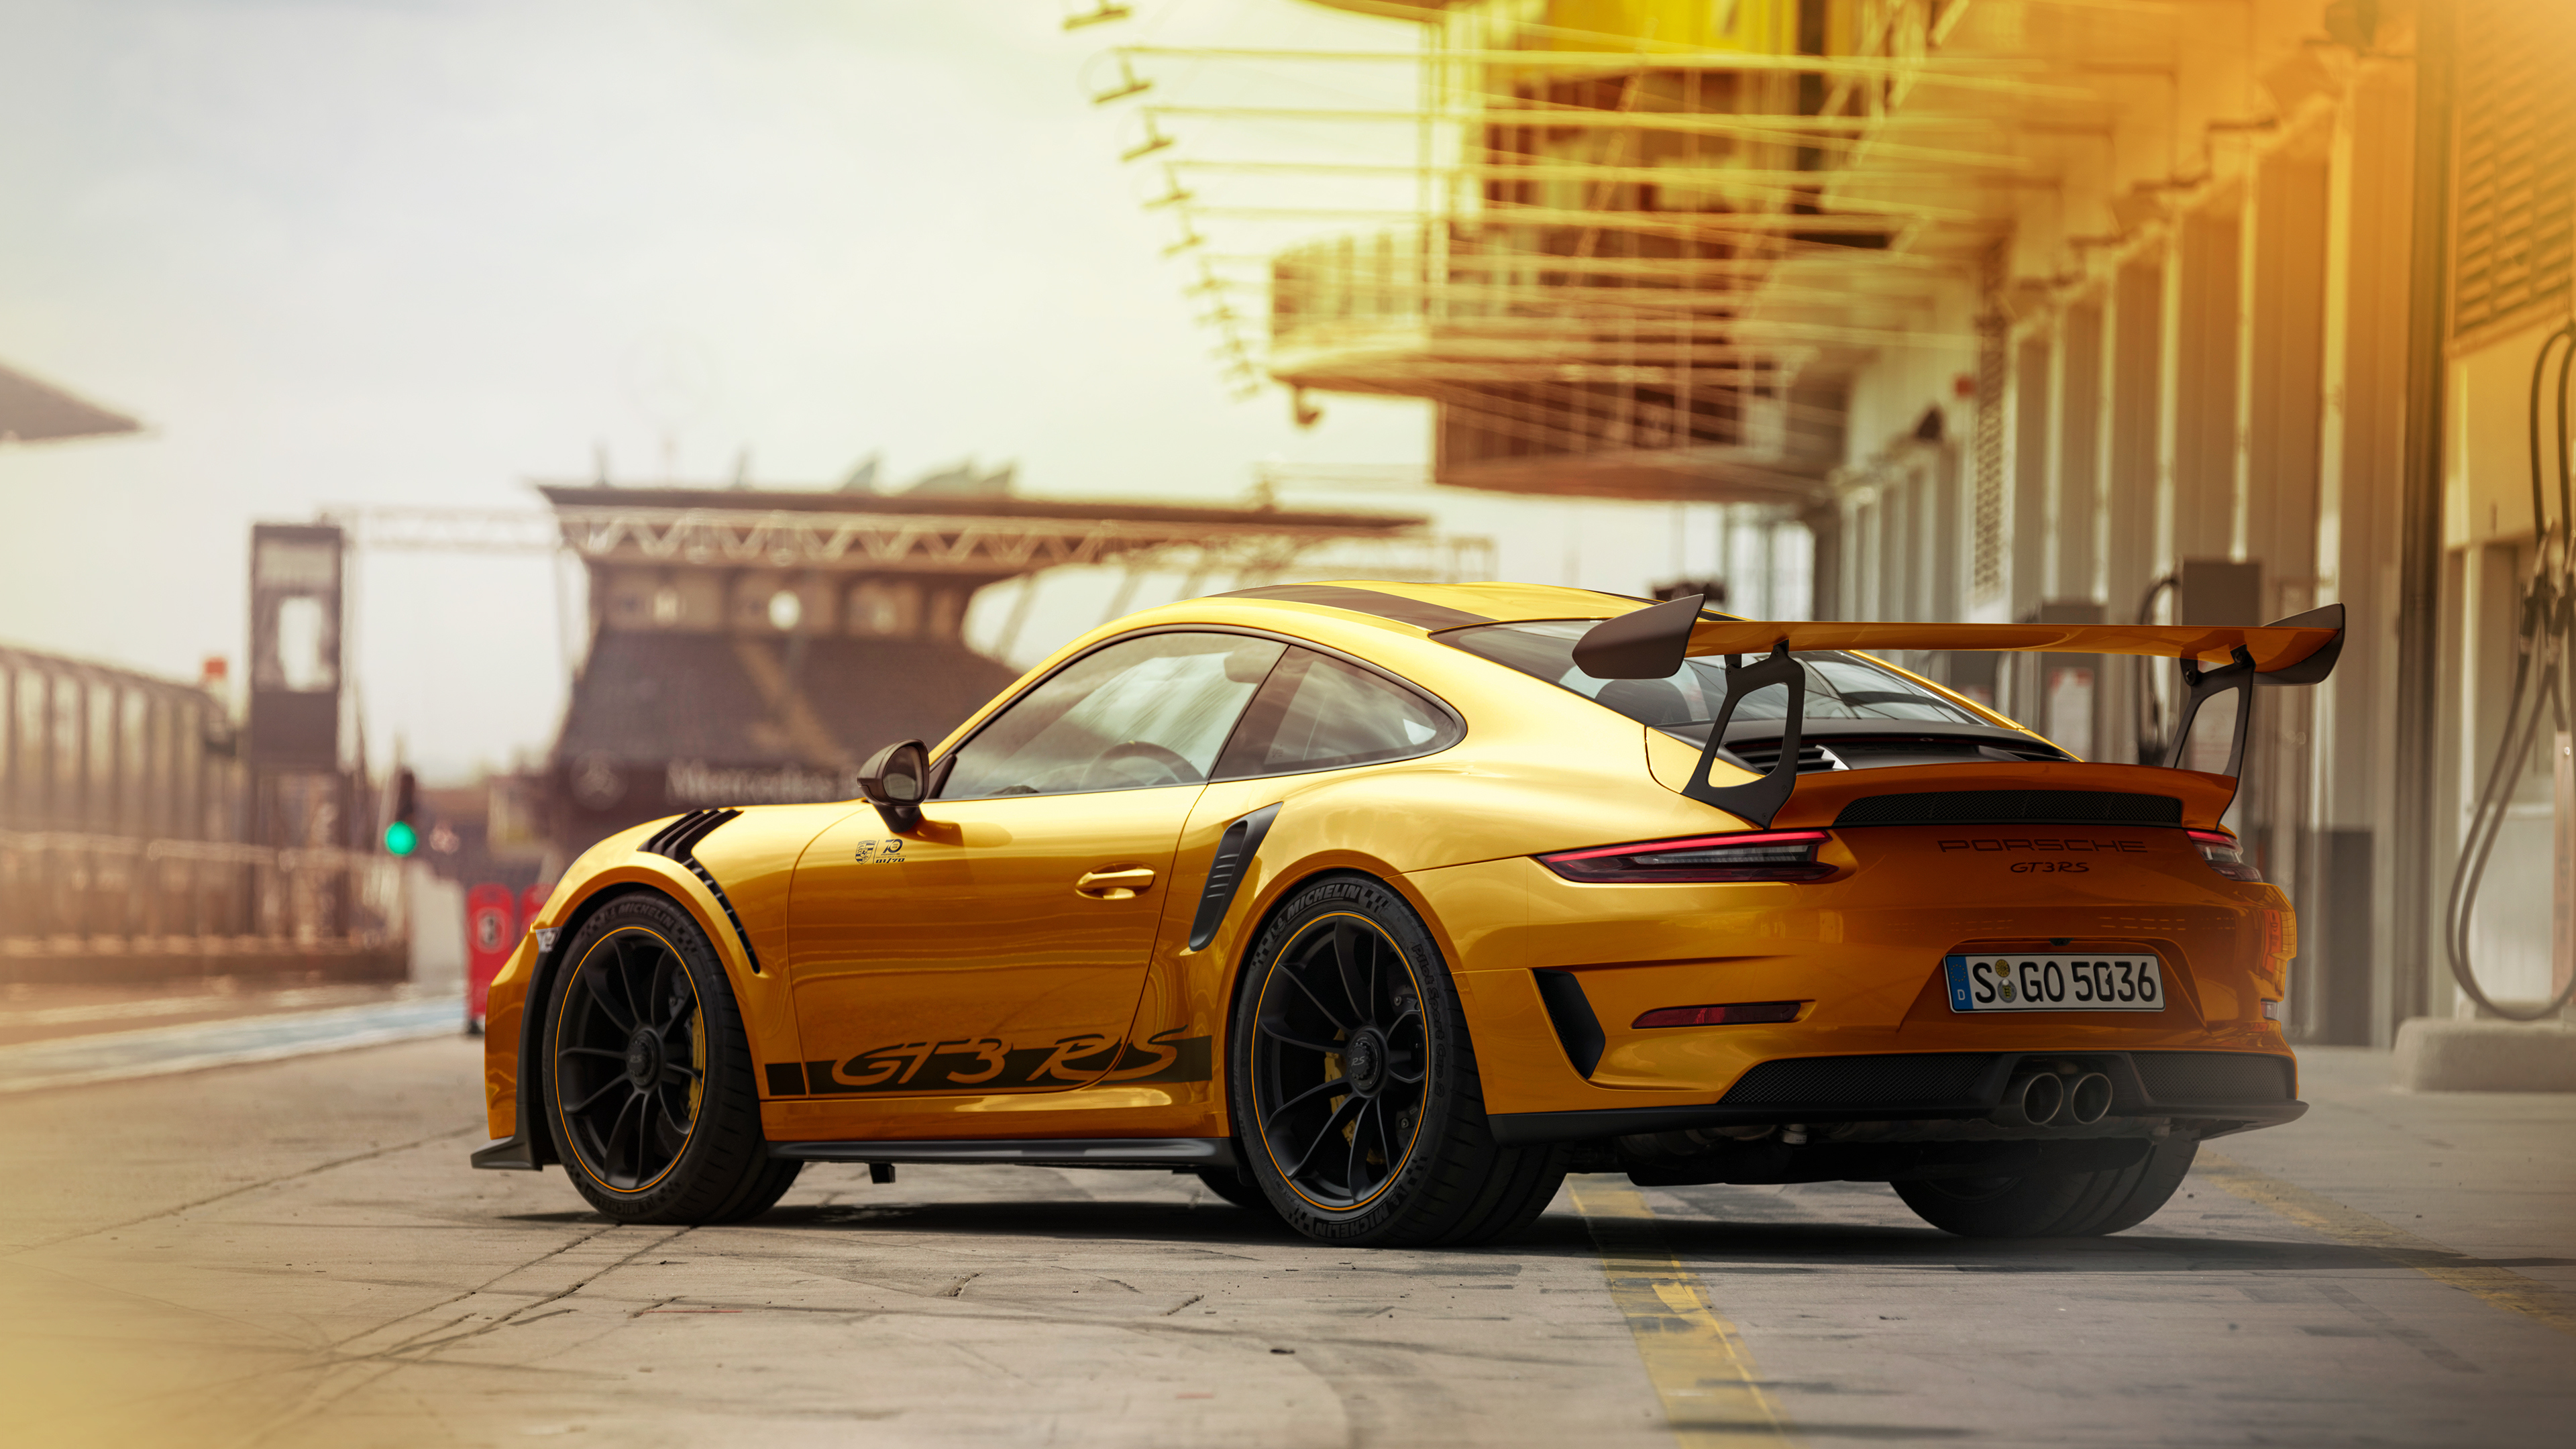 porsche 911gt3rs gold 4k rear 1541969156 - Porsche 911GT3RS Gold 4k Rear - porsche wallpapers, porsche 911 wallpapers, porsche 911 gt3 r wallpapers, hd-wallpapers, cars wallpapers, behance wallpapers, 4k-wallpapers, 2018 cars wallpapers